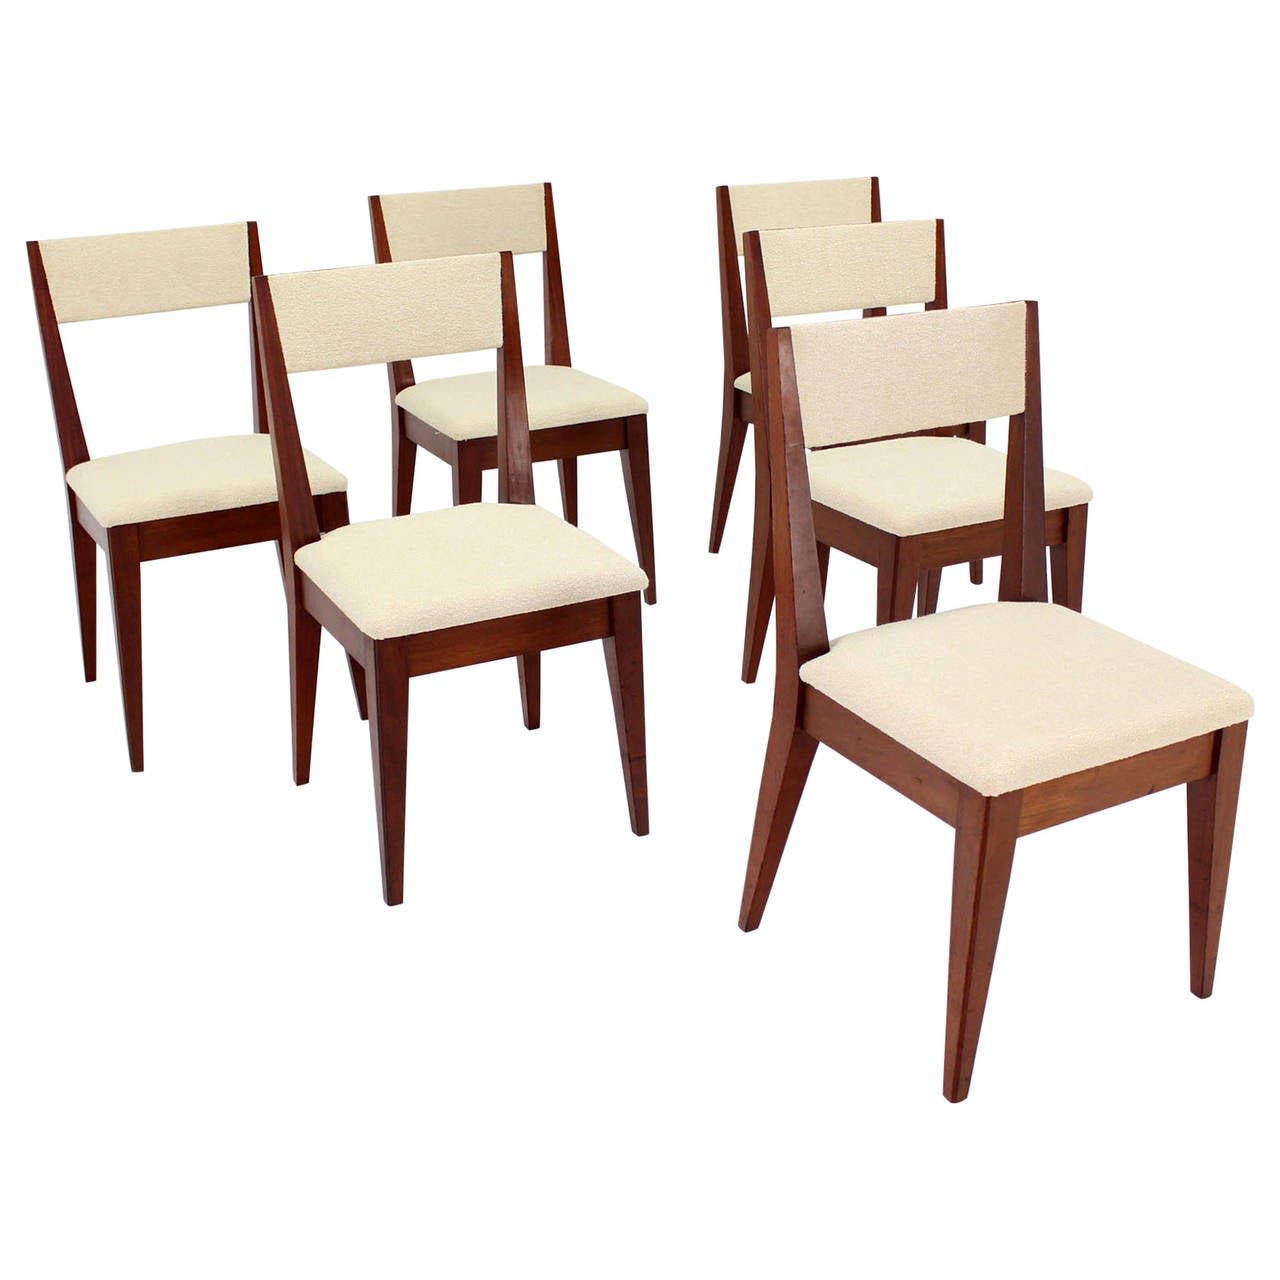 Set of six mid century modern dining chairs at 1stdibs for Contemporary furniture dining chairs